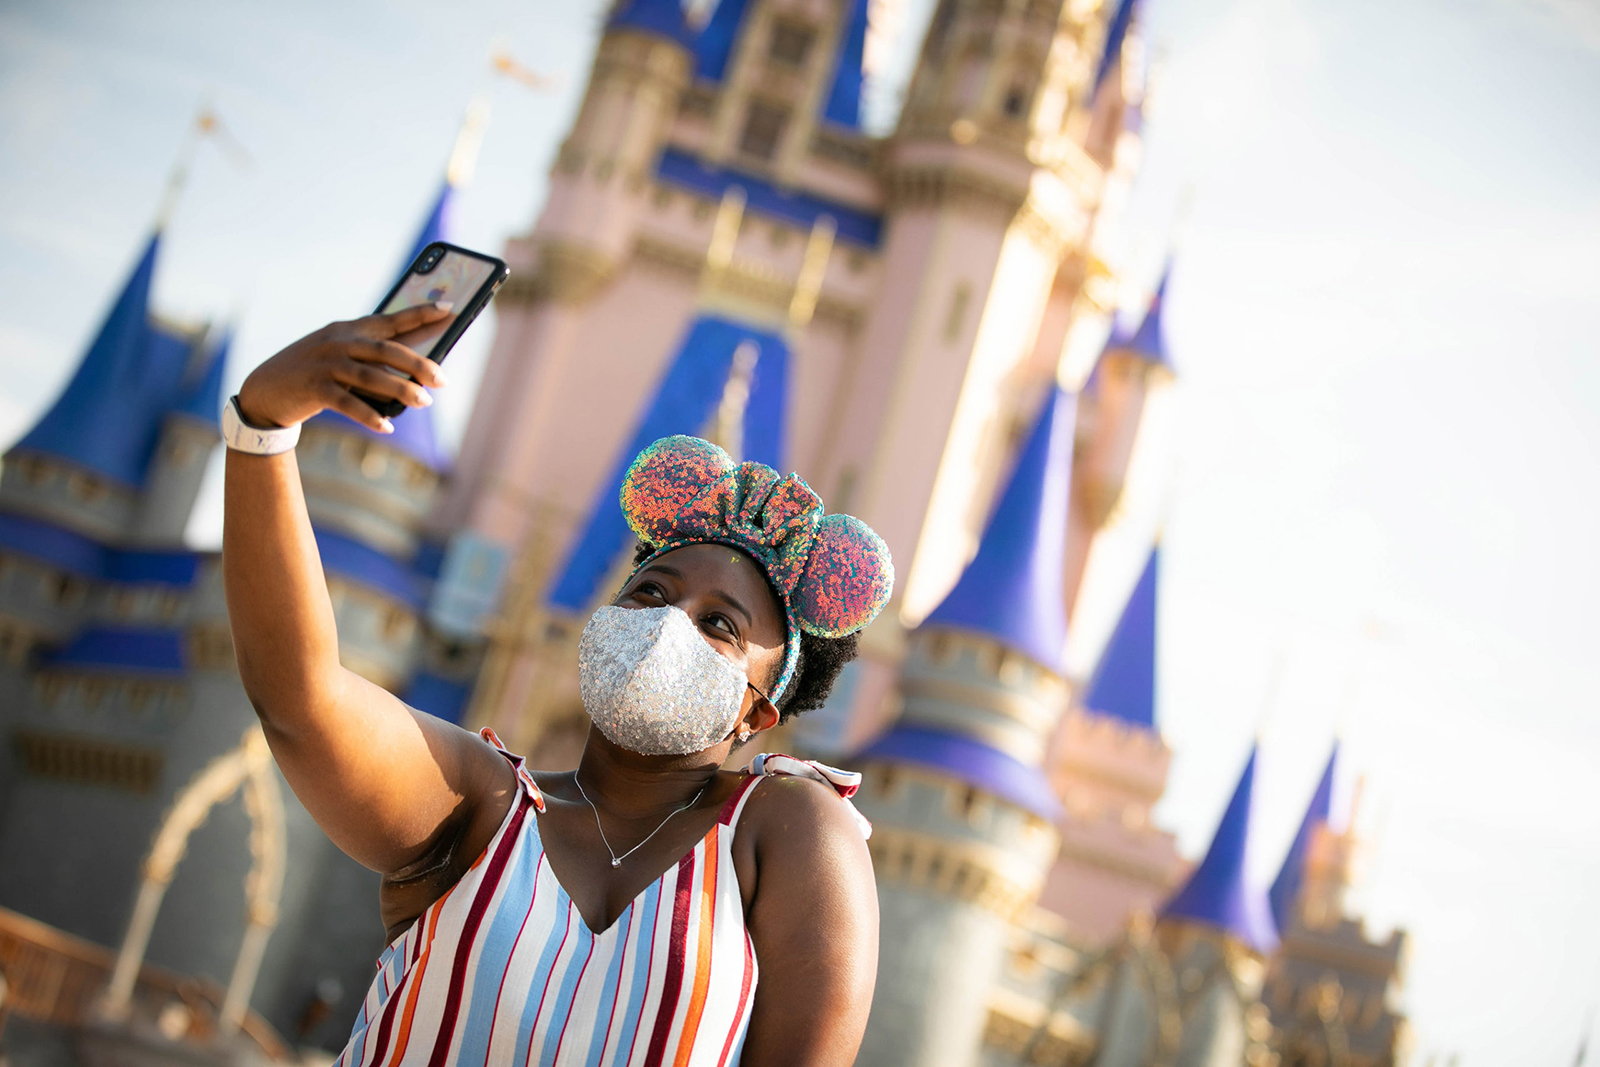 In this handout photo provided by Walt Disney World Resort, a guest stops to take a selfie at Magic Kingdom Park at Walt Disney World Resort on July 11, 2020 in Lake Buena Vista, Florida. July 11, 2020 is the first day of the phased reopening. (Olga Thompson/Walt Disney World Resort via Getty Images)